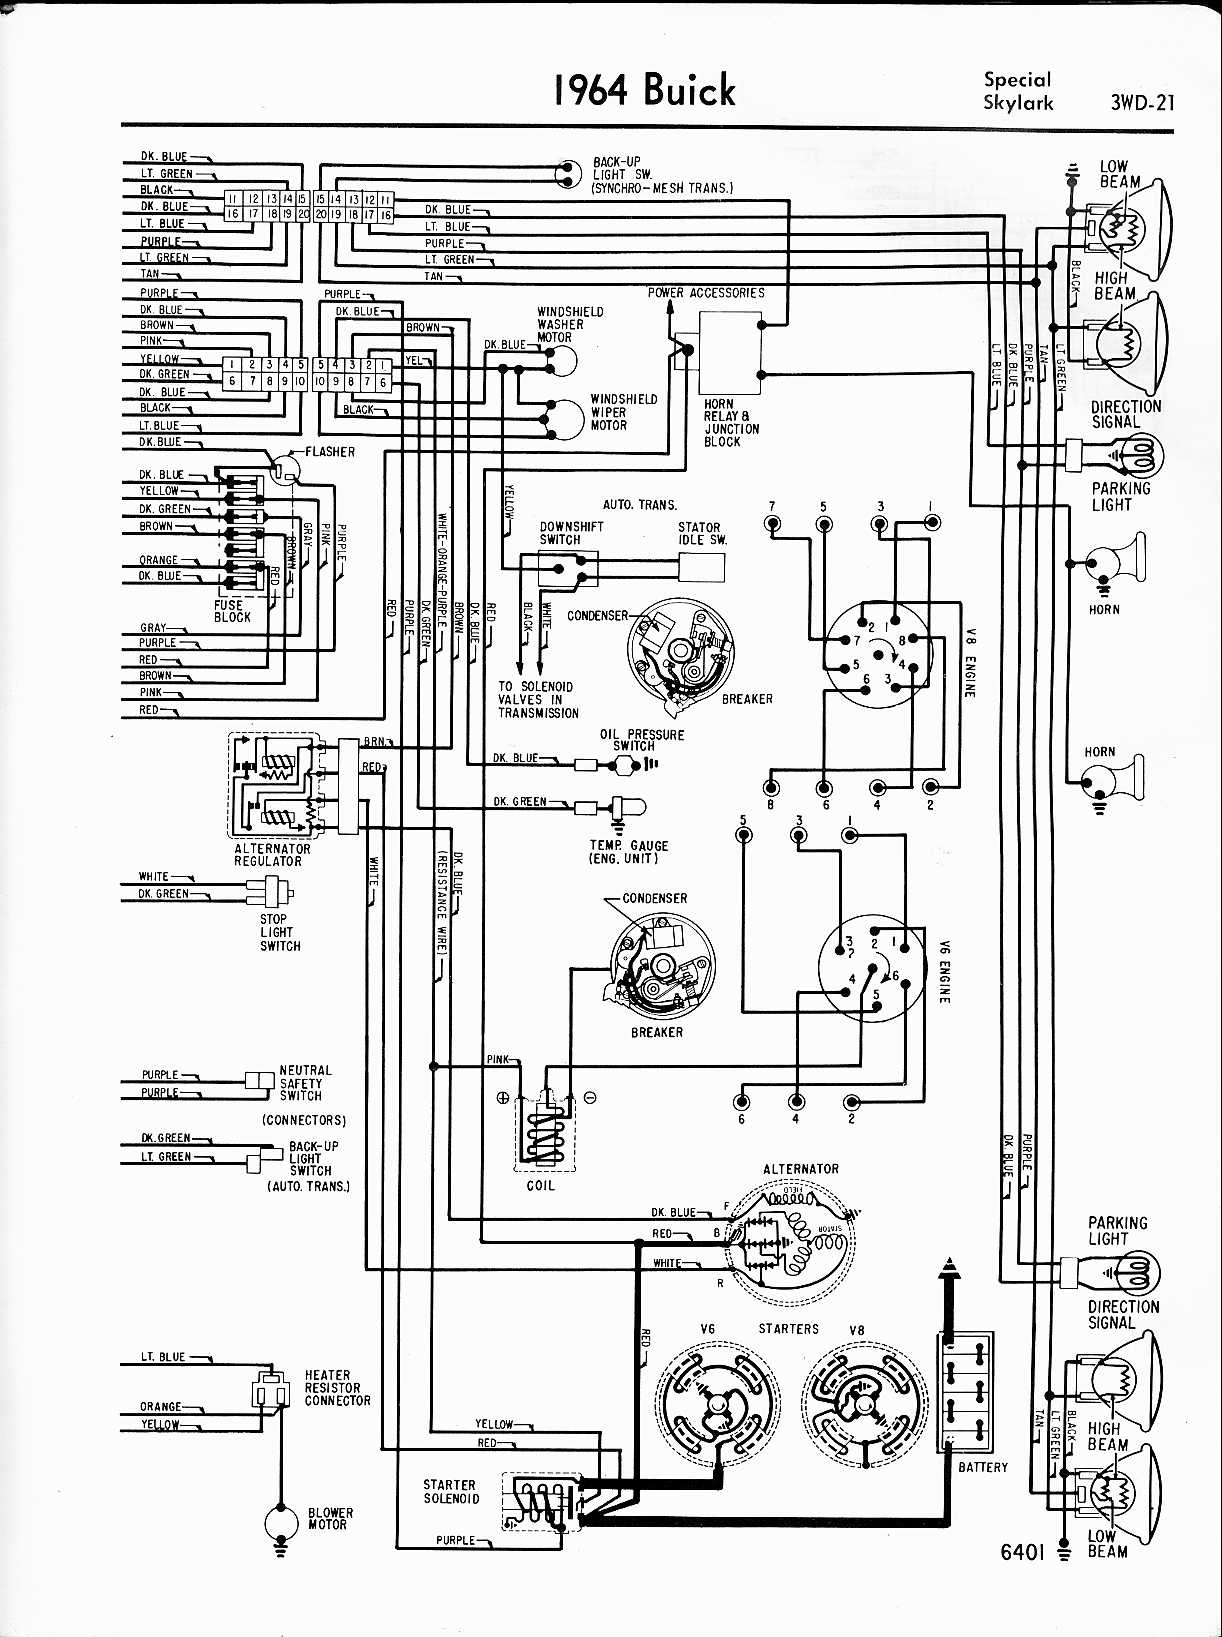 1966 buick riviera wiring diagram simple wiring diagram rh david huggett co  uk 1966 Buick Skylark